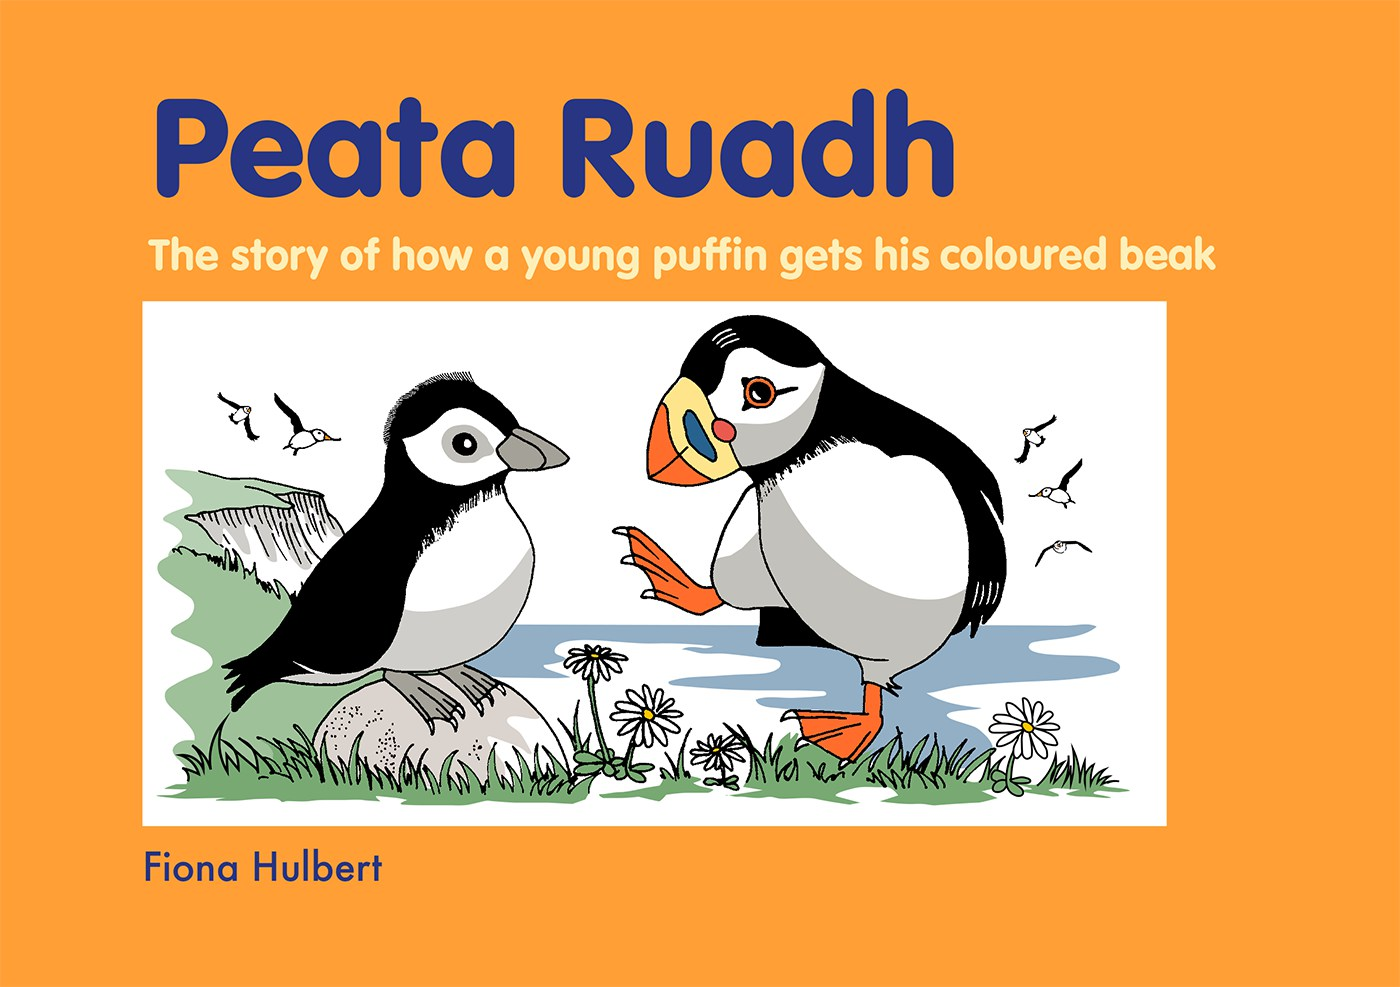 Peata Ruadh is fed up waiting for his very first colourful beak. Peata decides to explore some very imaginative solutions to his impatience.  But he soon realises that nature will not be rushed. Creative ideas lead the reader to a natural process.